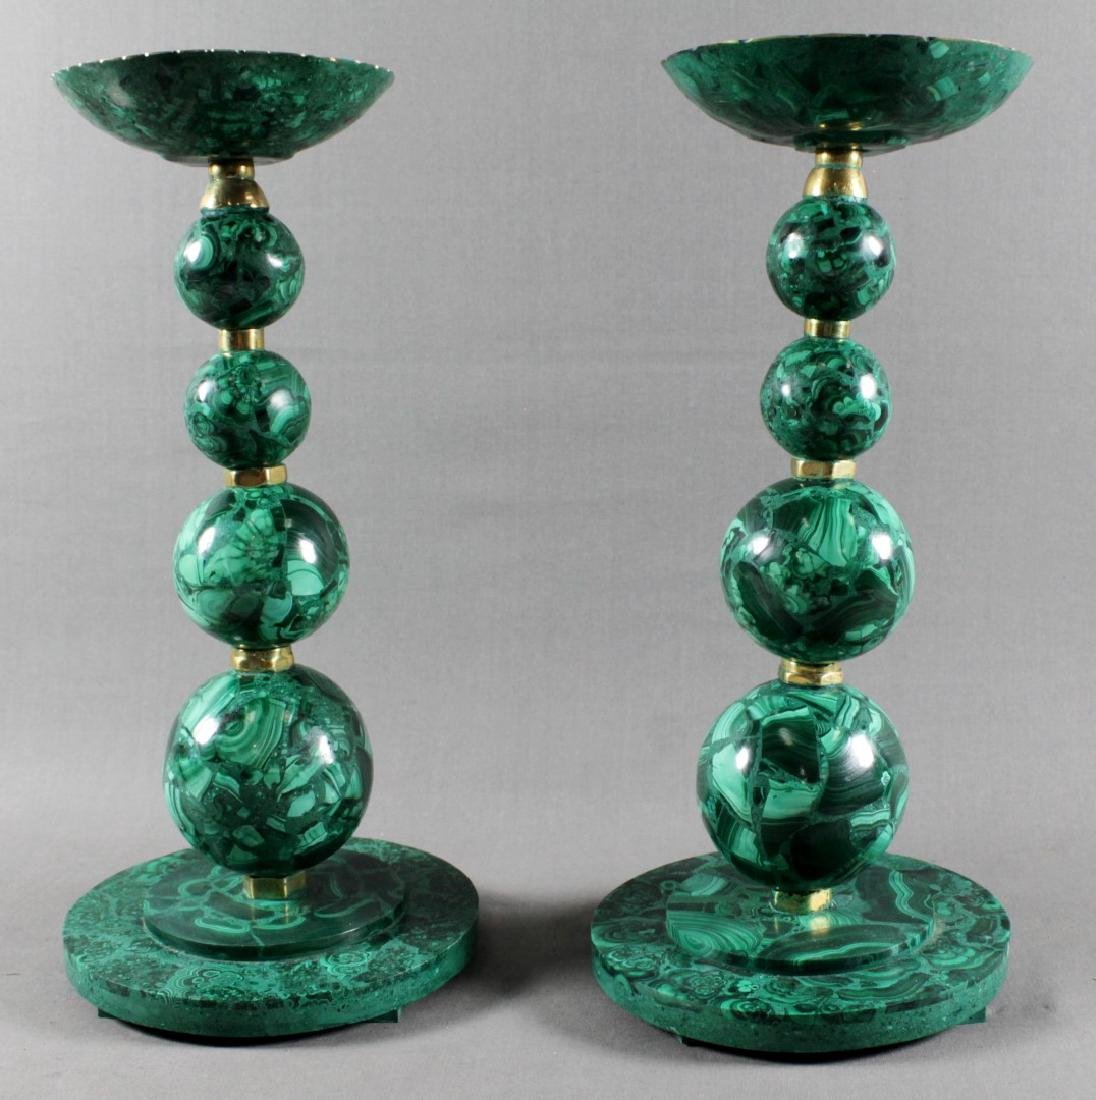 PAIR OF RUSSIAN MALACHITE CANDLESTICKS